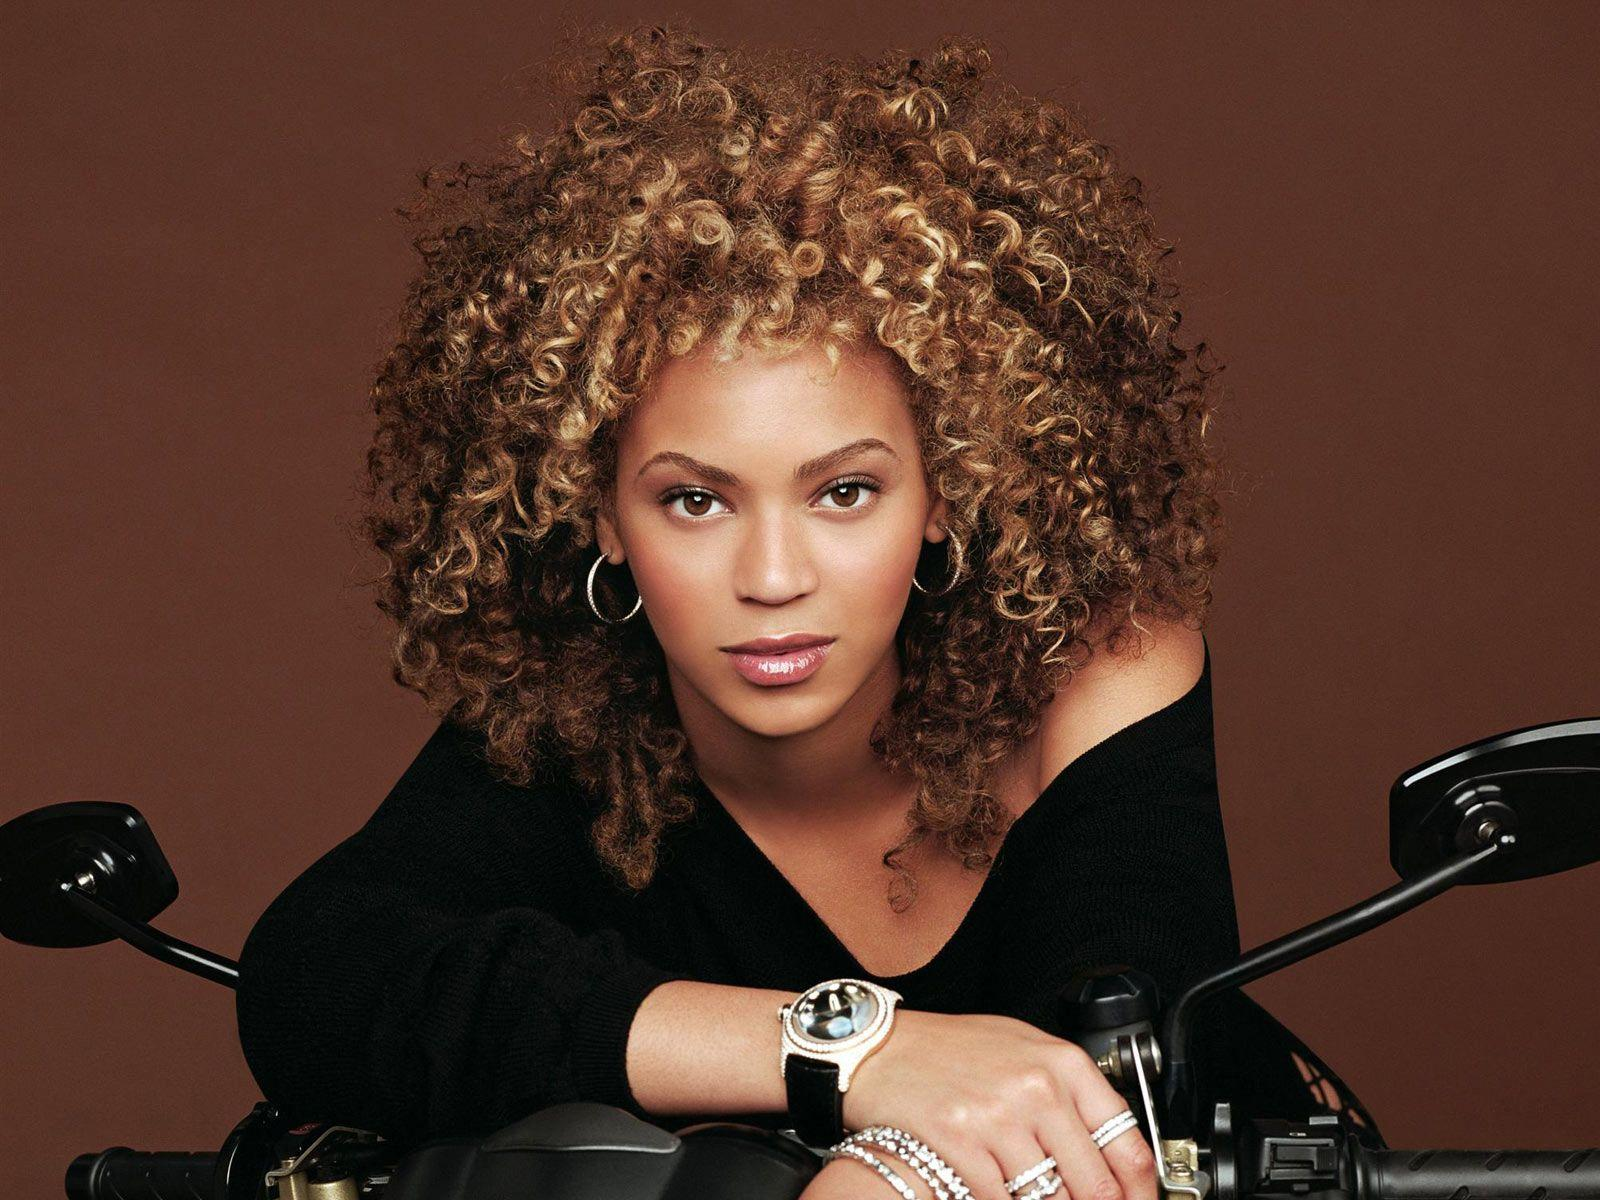 Beyonce Hair Style: Inspiring Quotes From Inspiring People That Feed My Soul